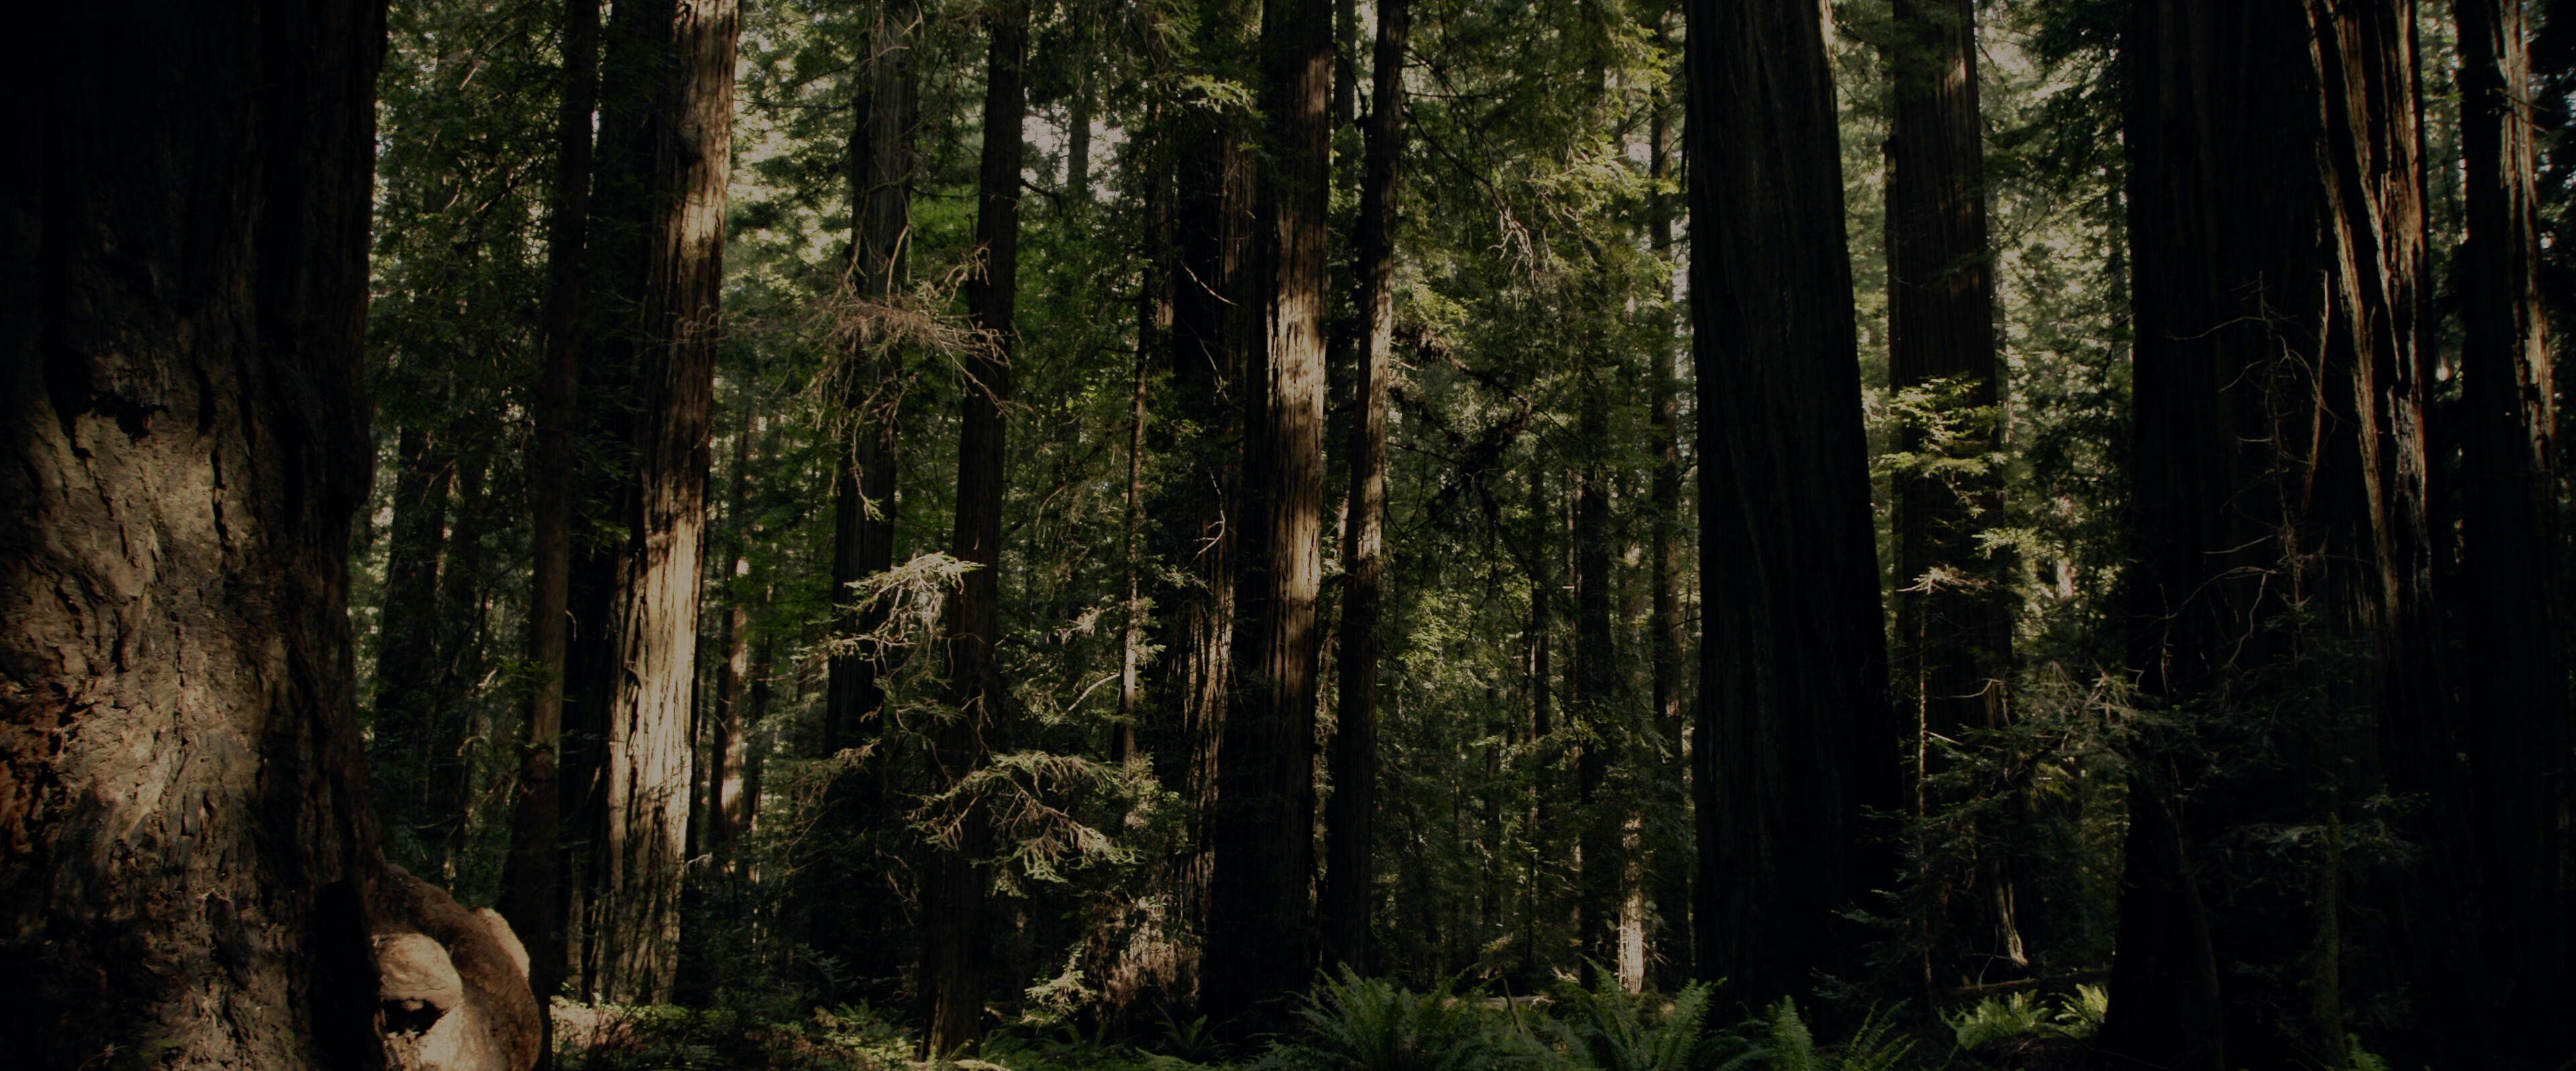 Sasquatch Ñ While visiting a pot farm in Northern California in 1993, investigative journalist David Holthouse heard a story that still haunts him: On a nearby farm three men were torn limb from limb in a savage Bigfoot attack. SASQUATCH follows David as he revisits the Redwoods 25 years later, in search of any evidence that might lead to the truth of what happened that night. As he pulls at the threads of this story heÕll be taken down a path thatÕs far more terrifying than anyone would have imagined. (Photo by: Hulu)